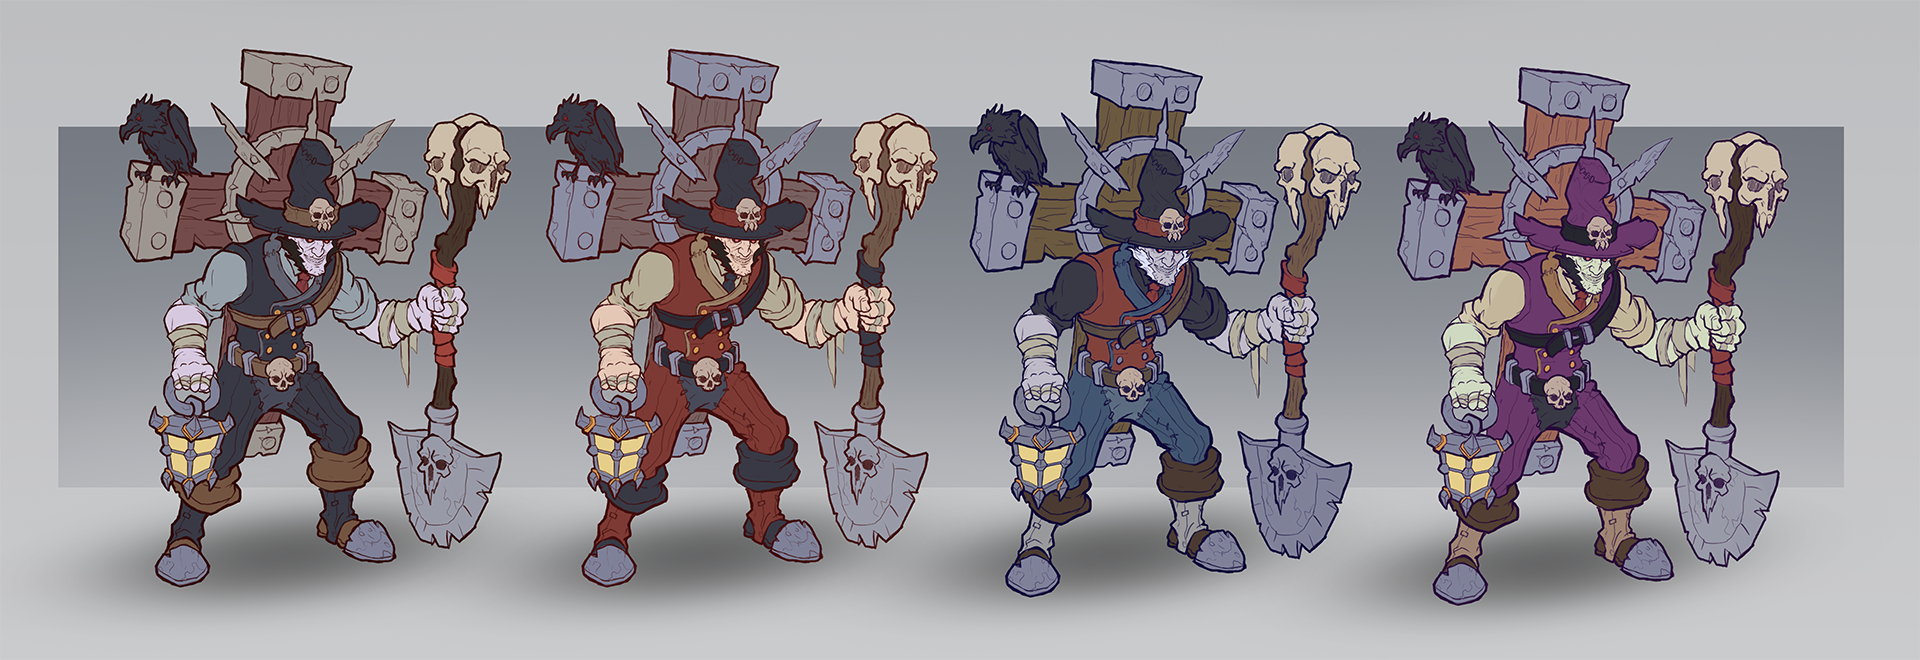 colored character concept art version